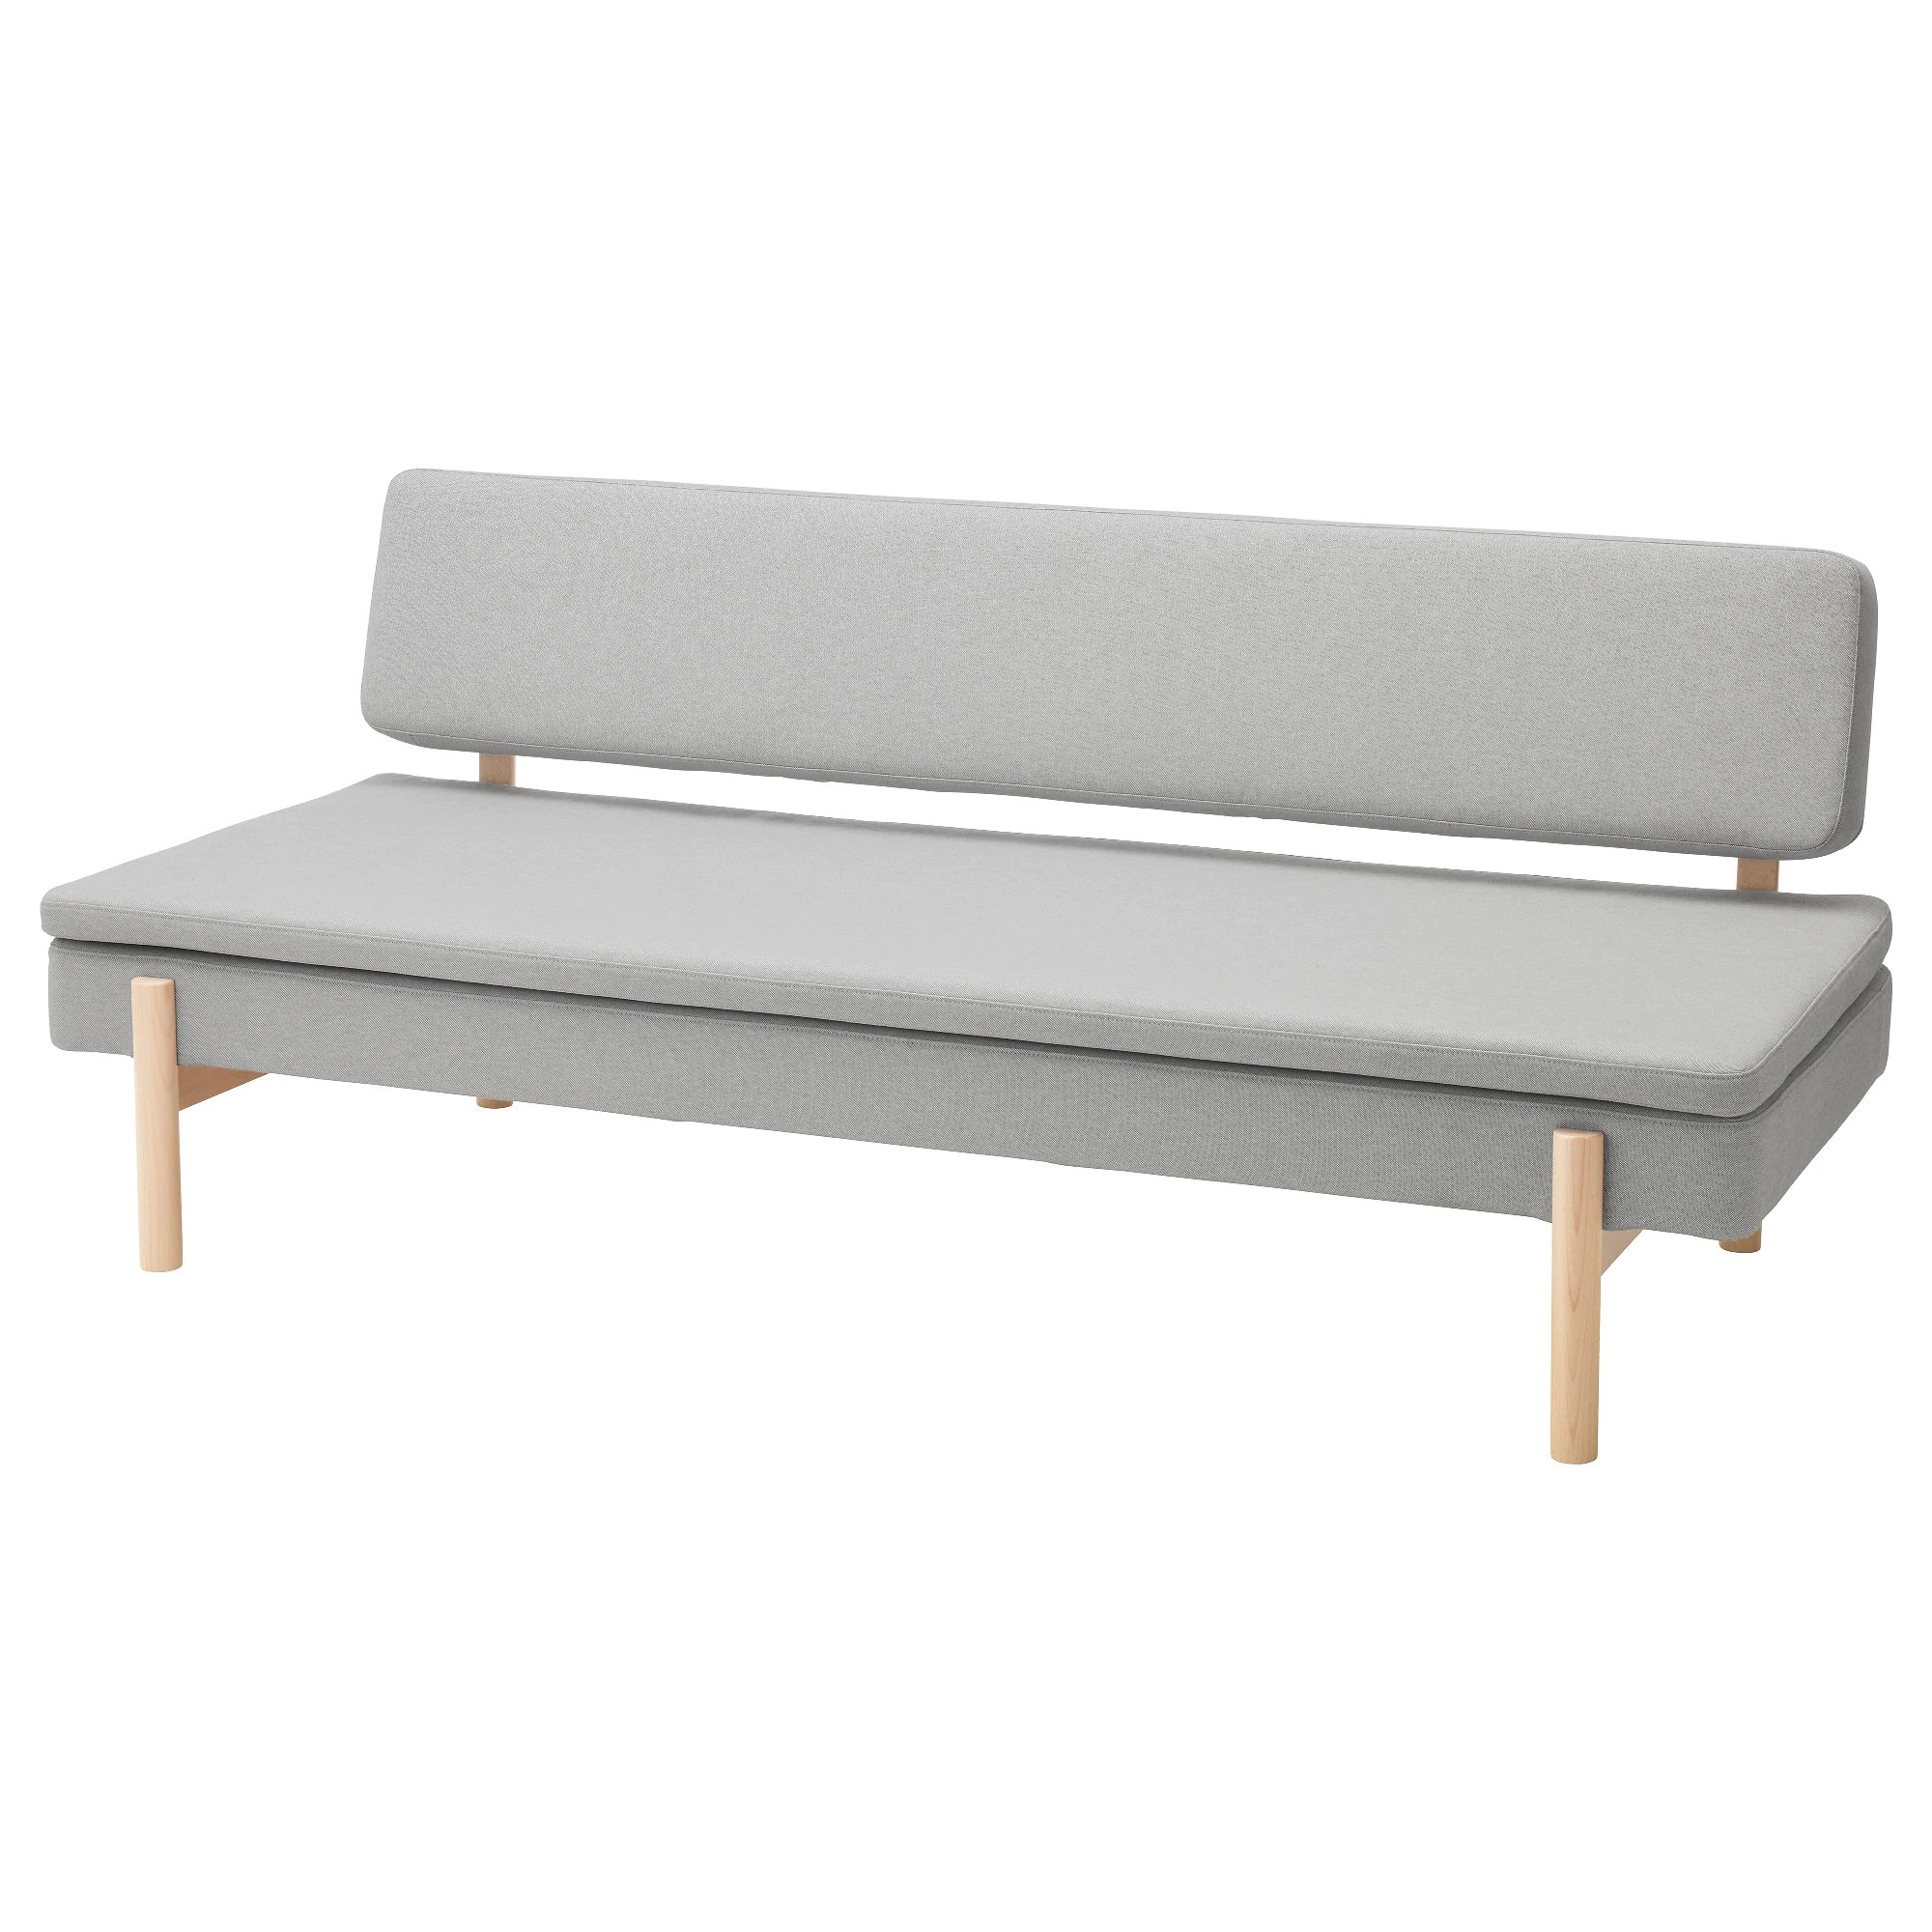 Ikea Online Bettsofa Ypperlig 3 Seat Sleeper Sofa Orrsta Light Gray